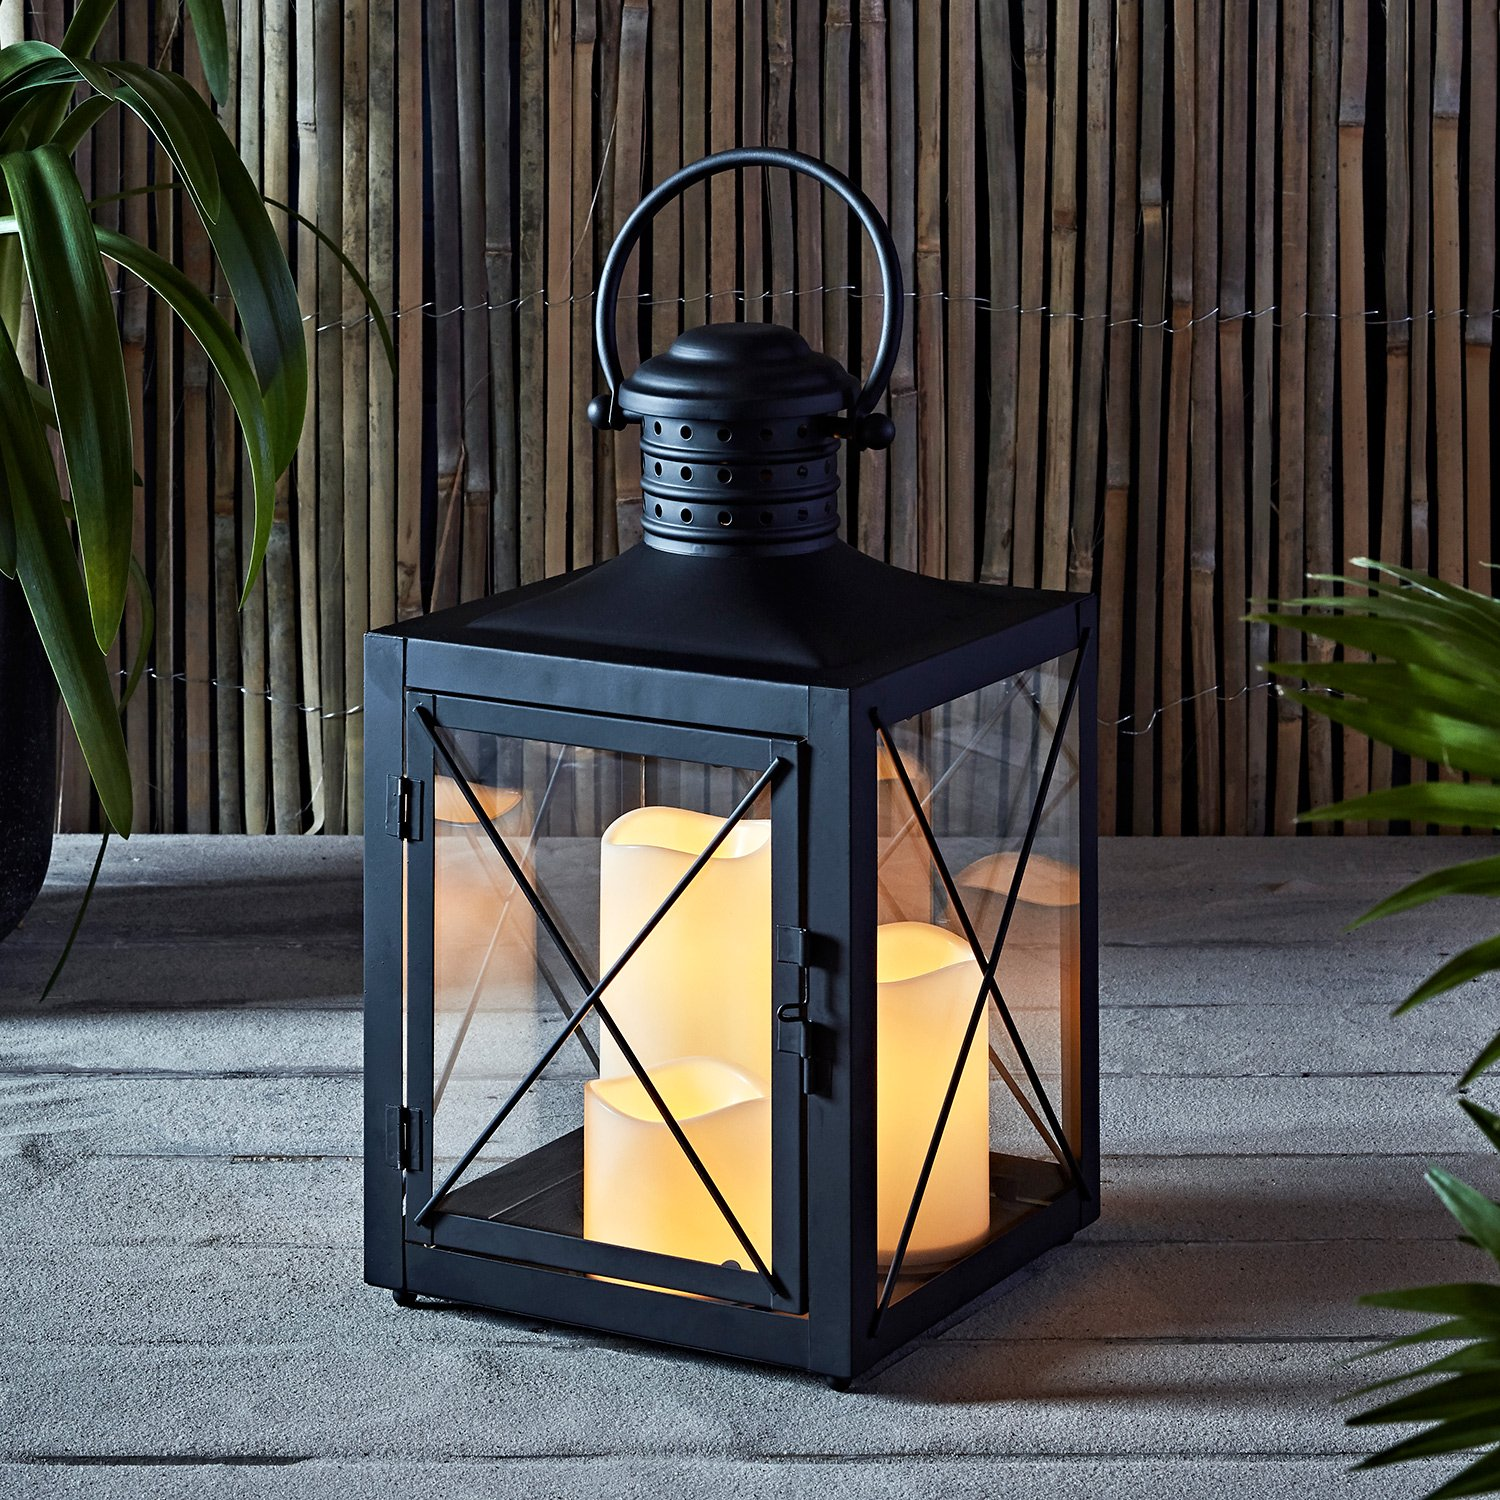 Square Black Battery Operated 3 Flameless LED Candle Lantern - ChristmasTablescapeDecor.com